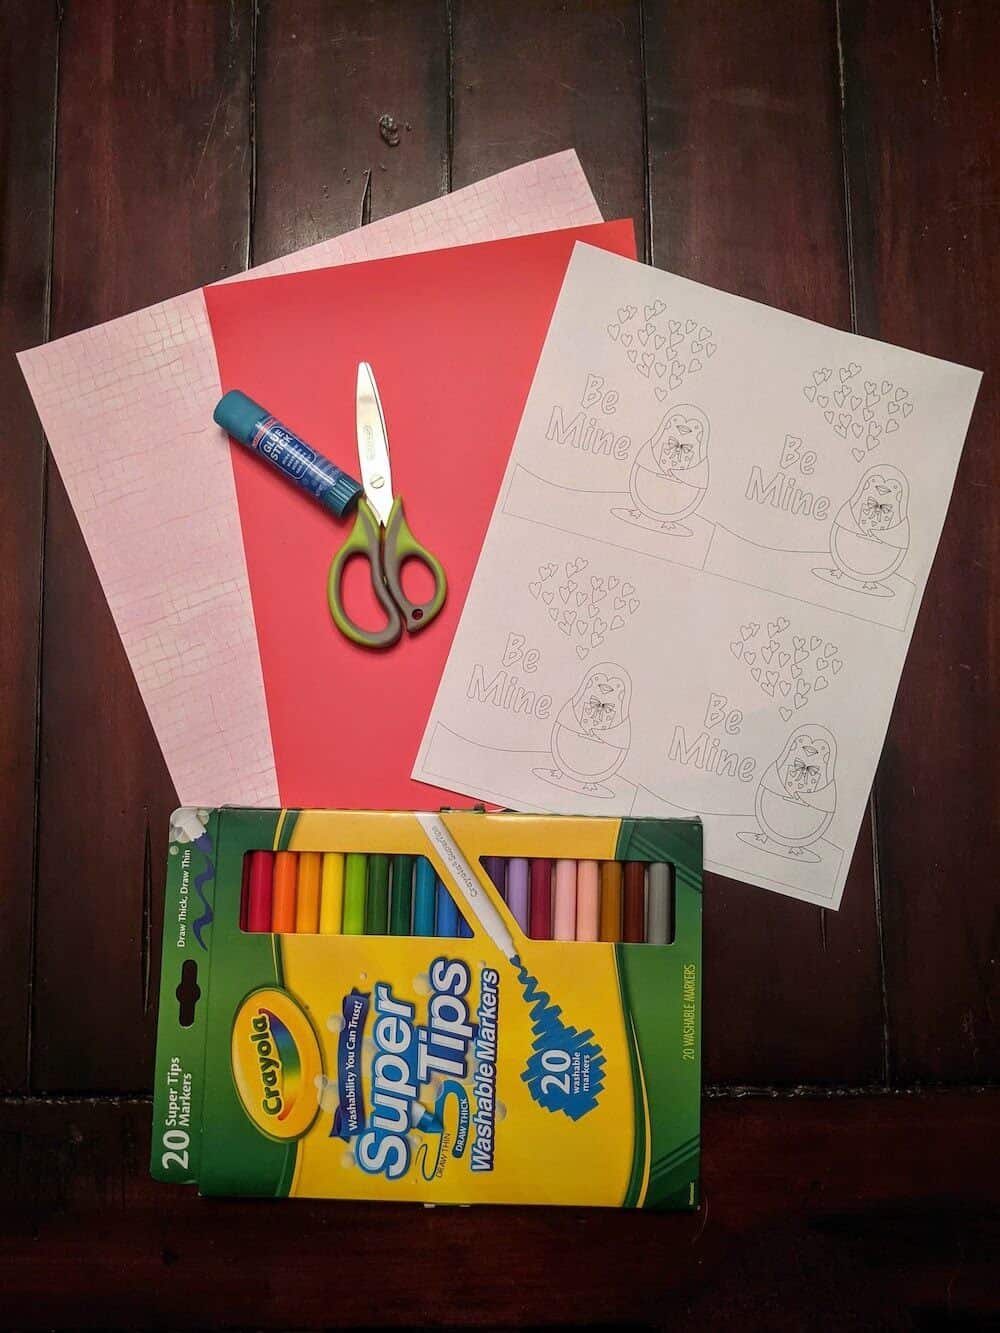 Printed penguin Valentine's cards with papers, scissors, glue stick, and markers ready for DIY project